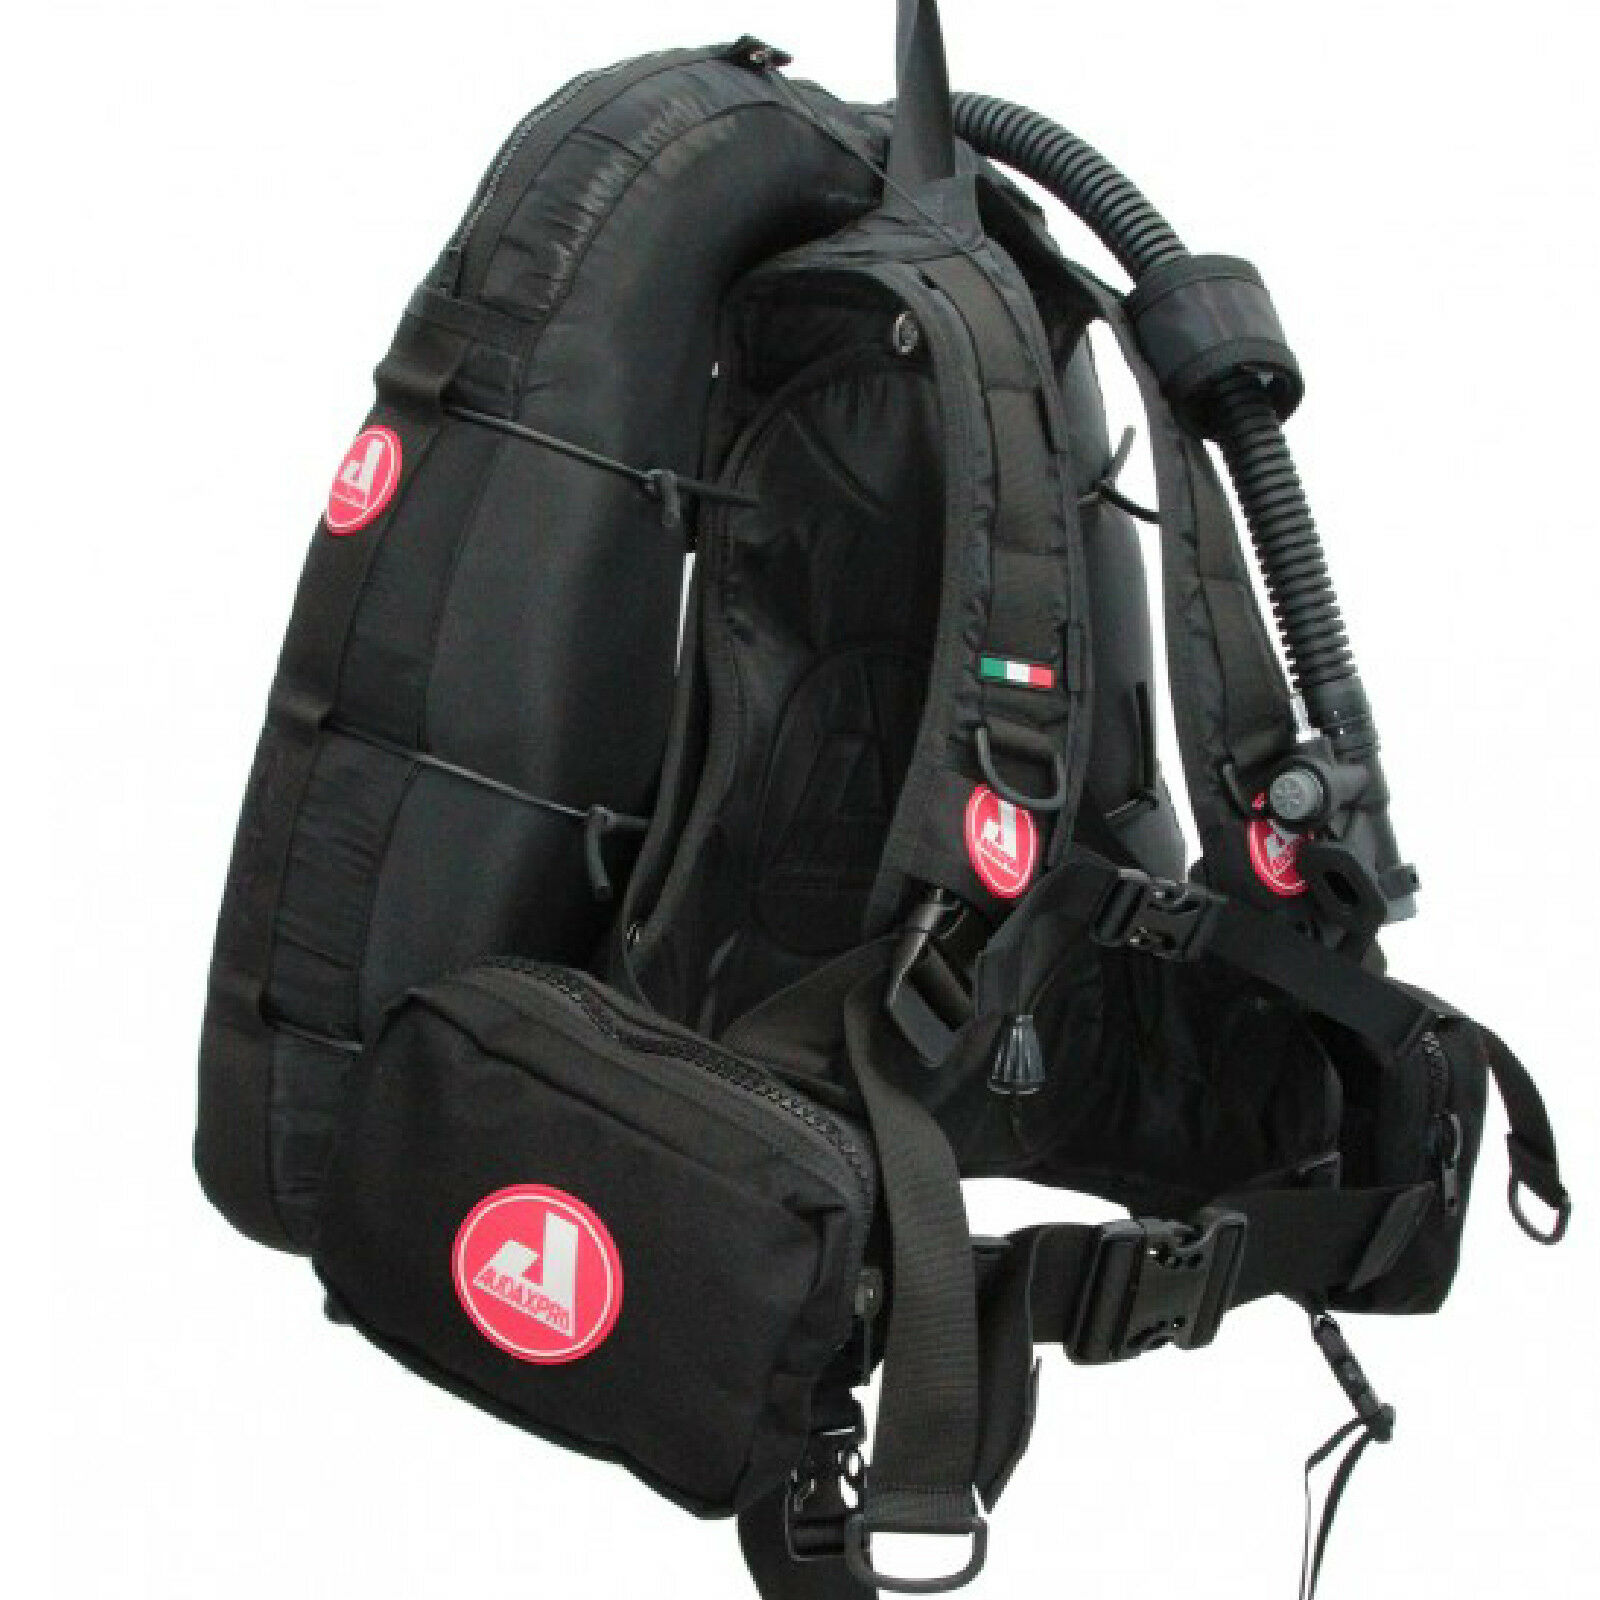 RO1 AUDAXPRO JACKET GAV BCD TRAVEL nero TASCA ORIZZONTALE 2 DUE  ZIP